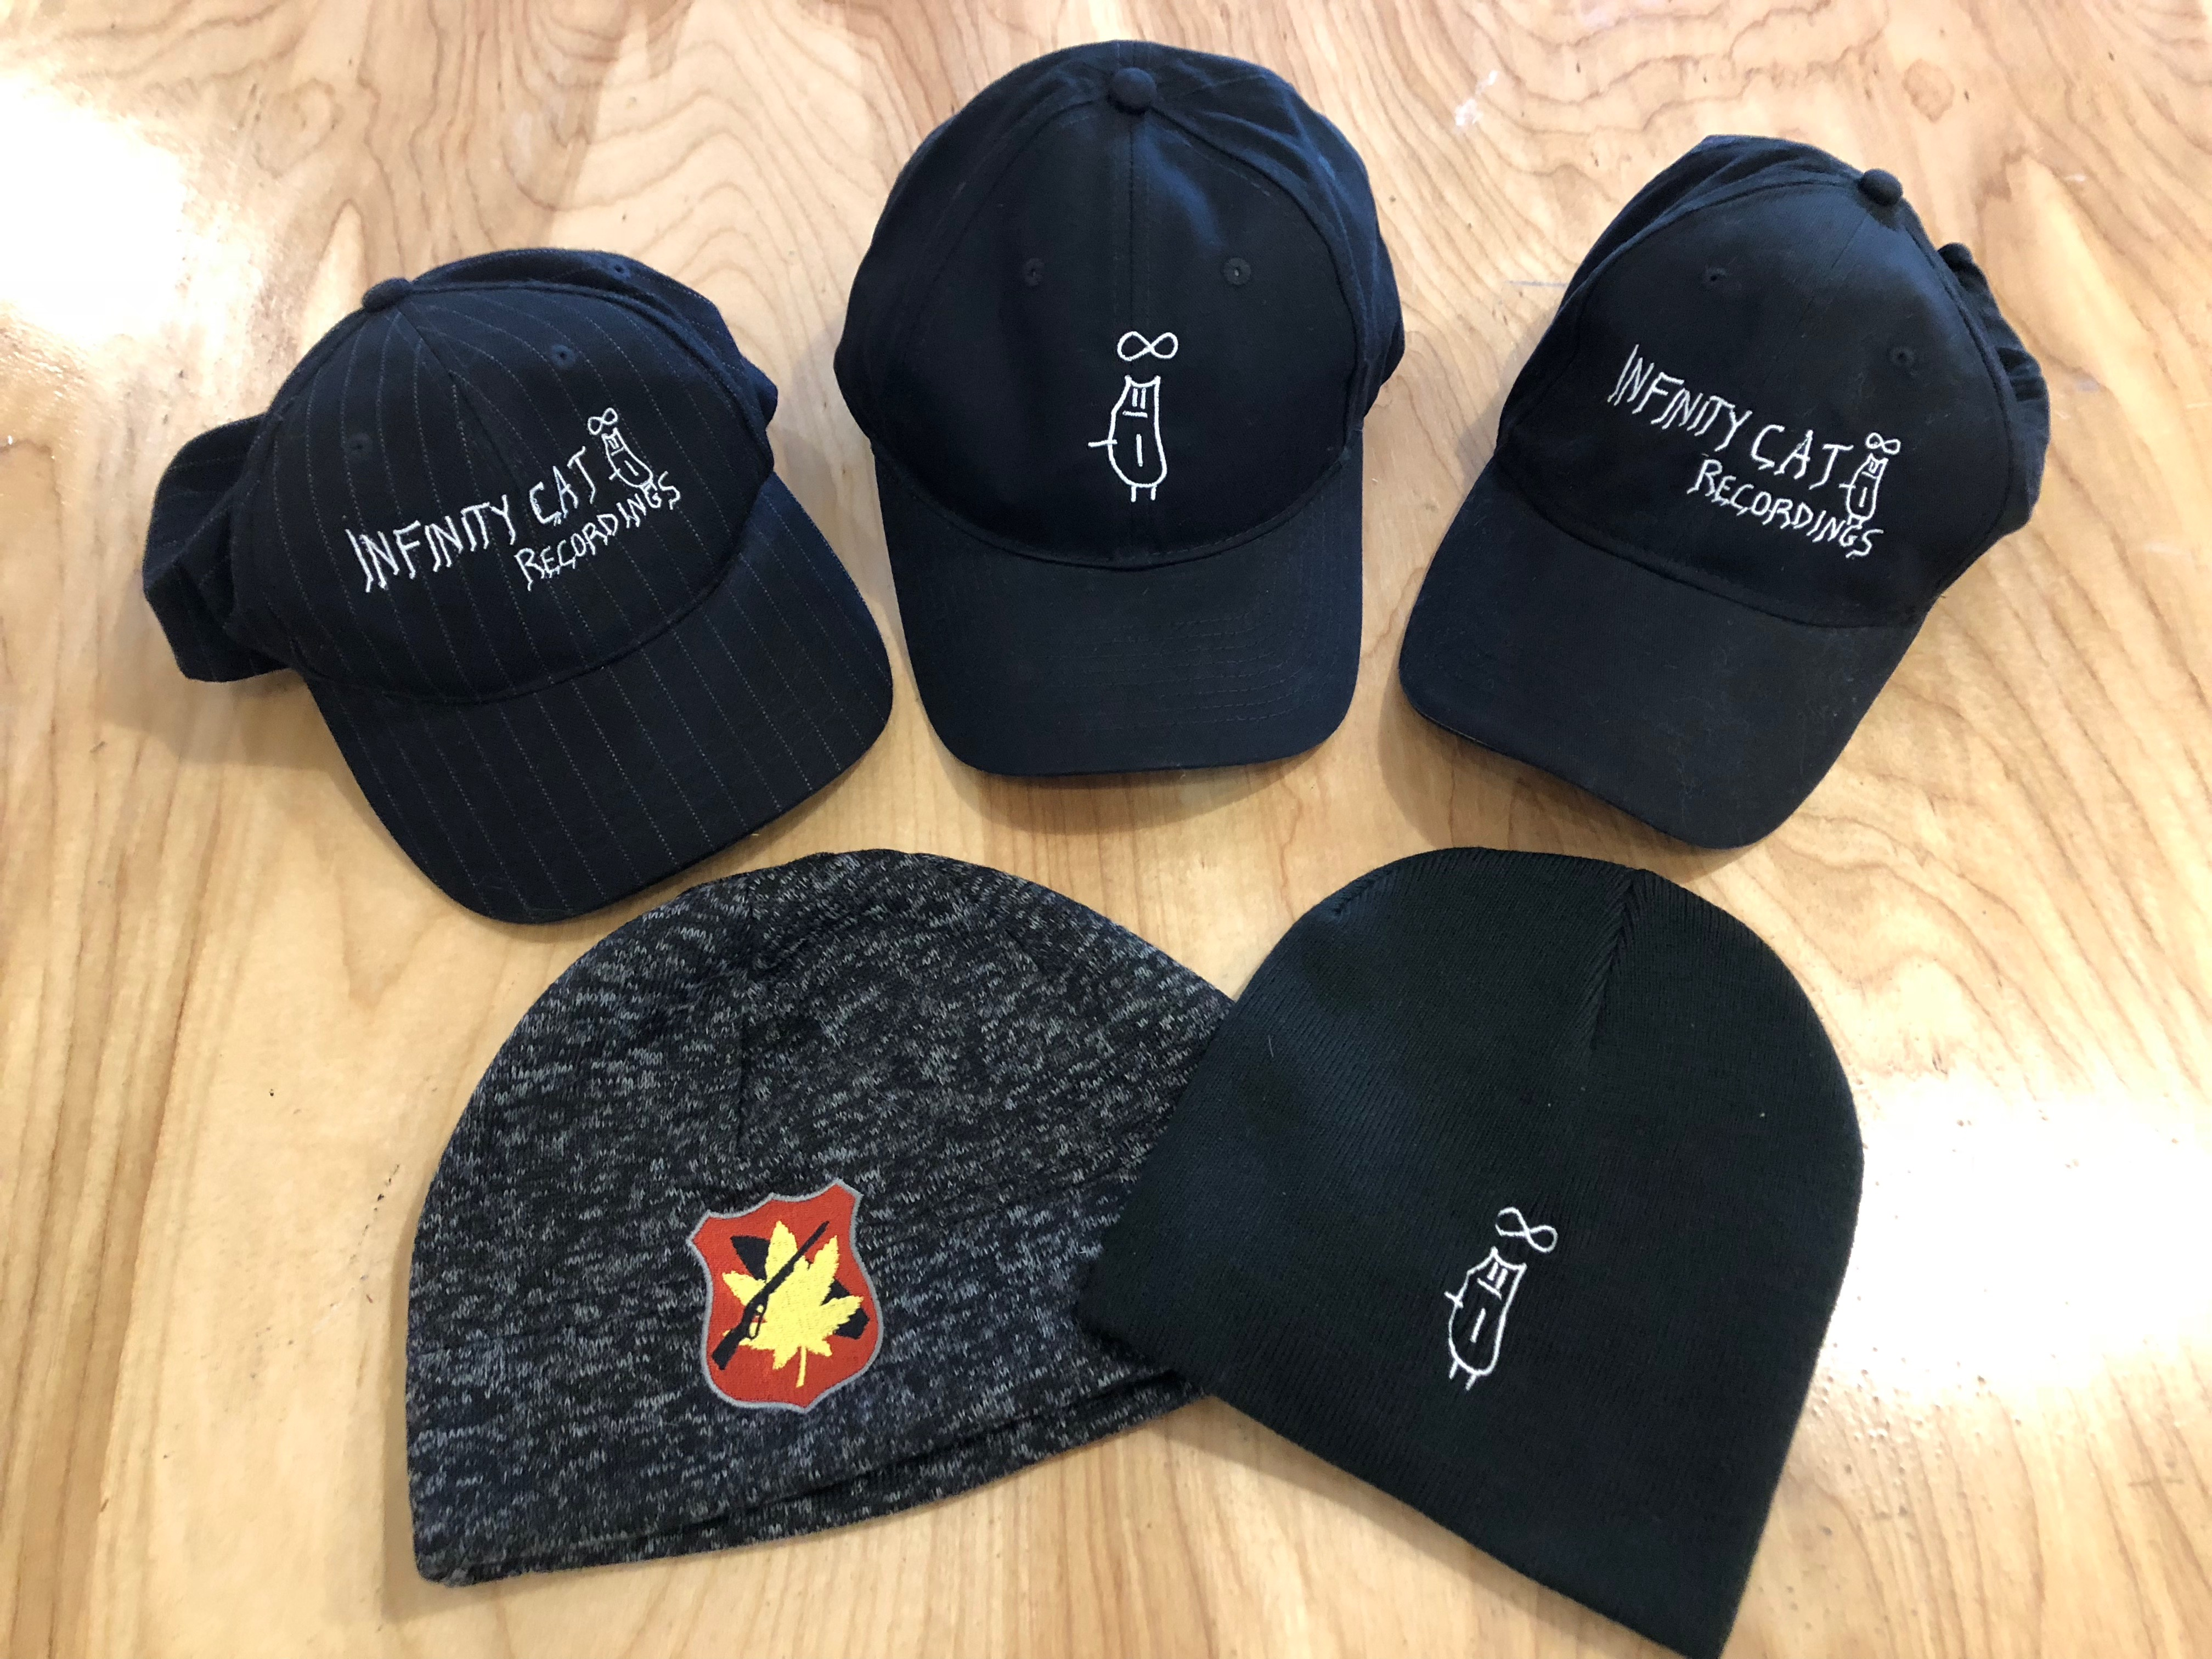 HATS! We have hats! Caps, Beanies, and Hats ON SALE NOW!